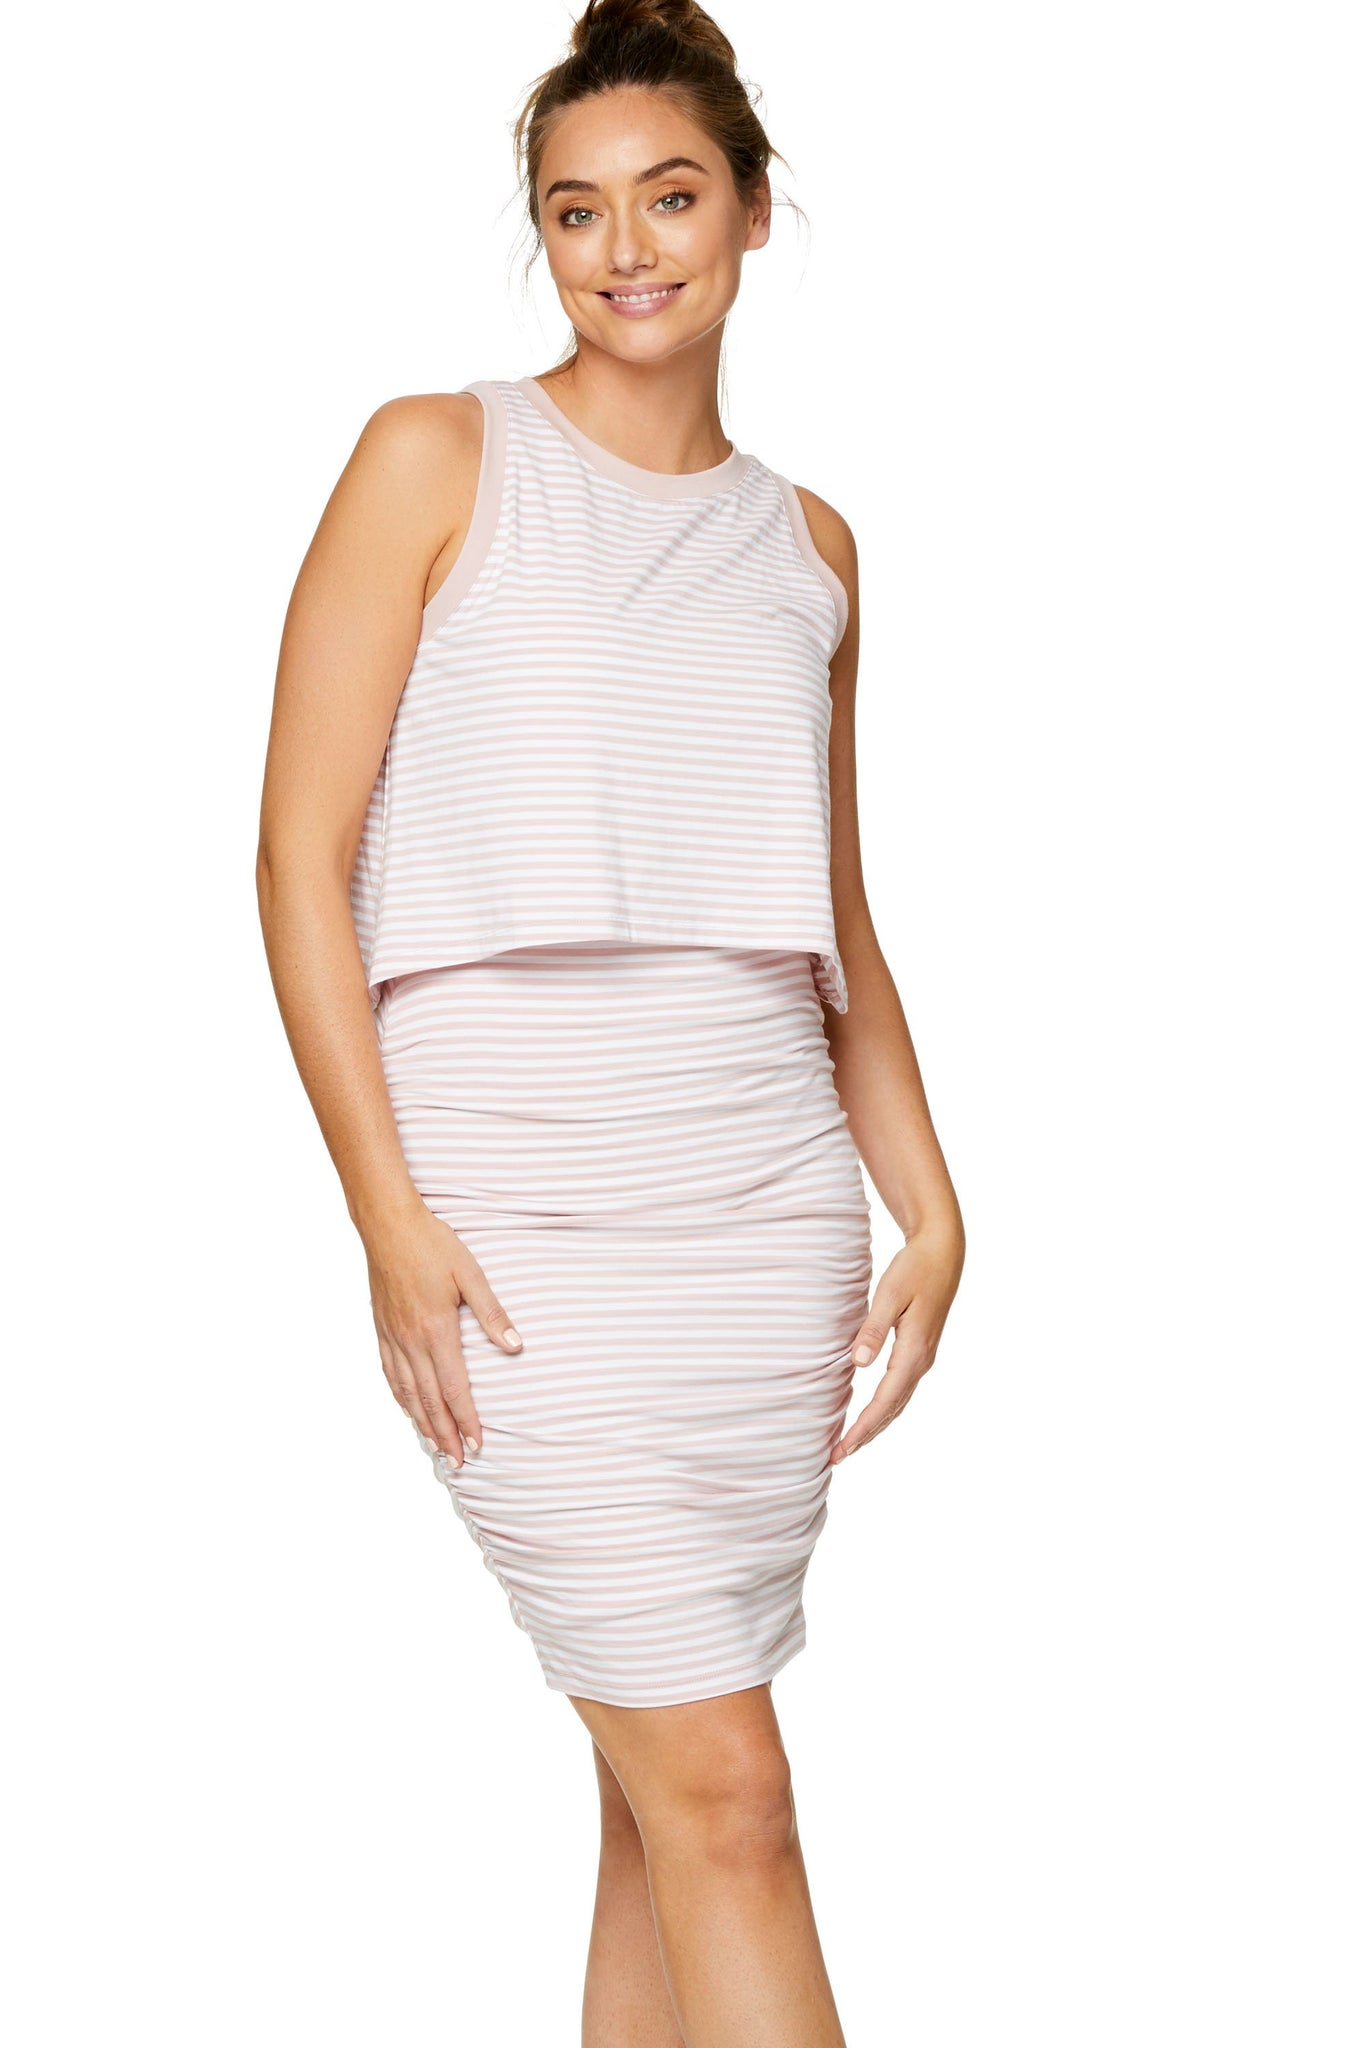 Stripe nursing & maternity dress - pink 5